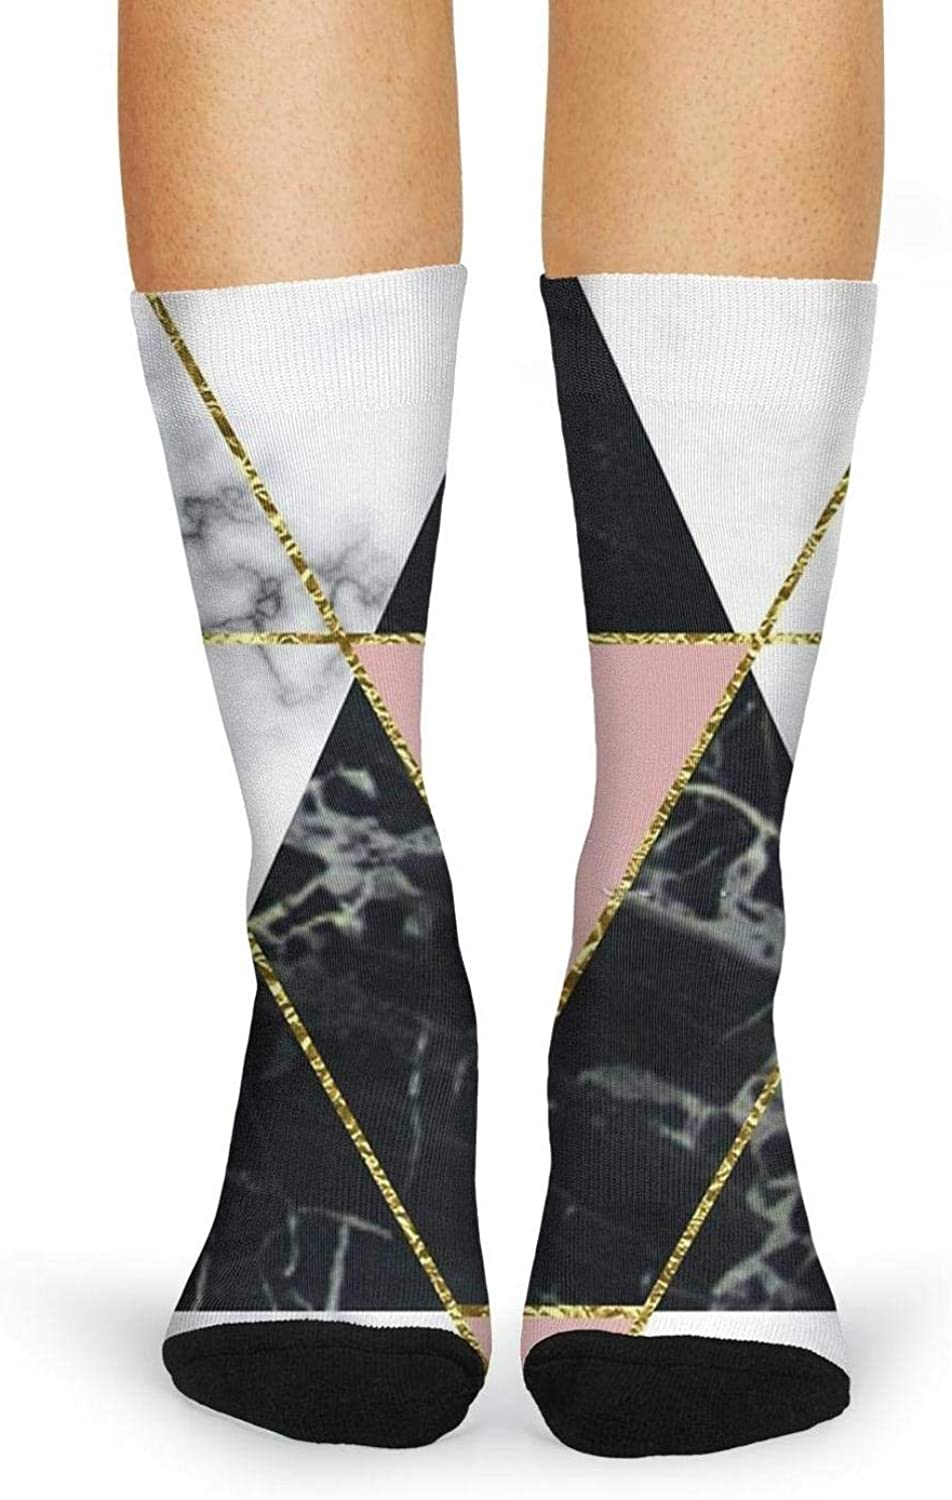 XIdan-die Womens Over-the-Calf Tube Socks Triangle Marble Moisture Wicking Casual Socks